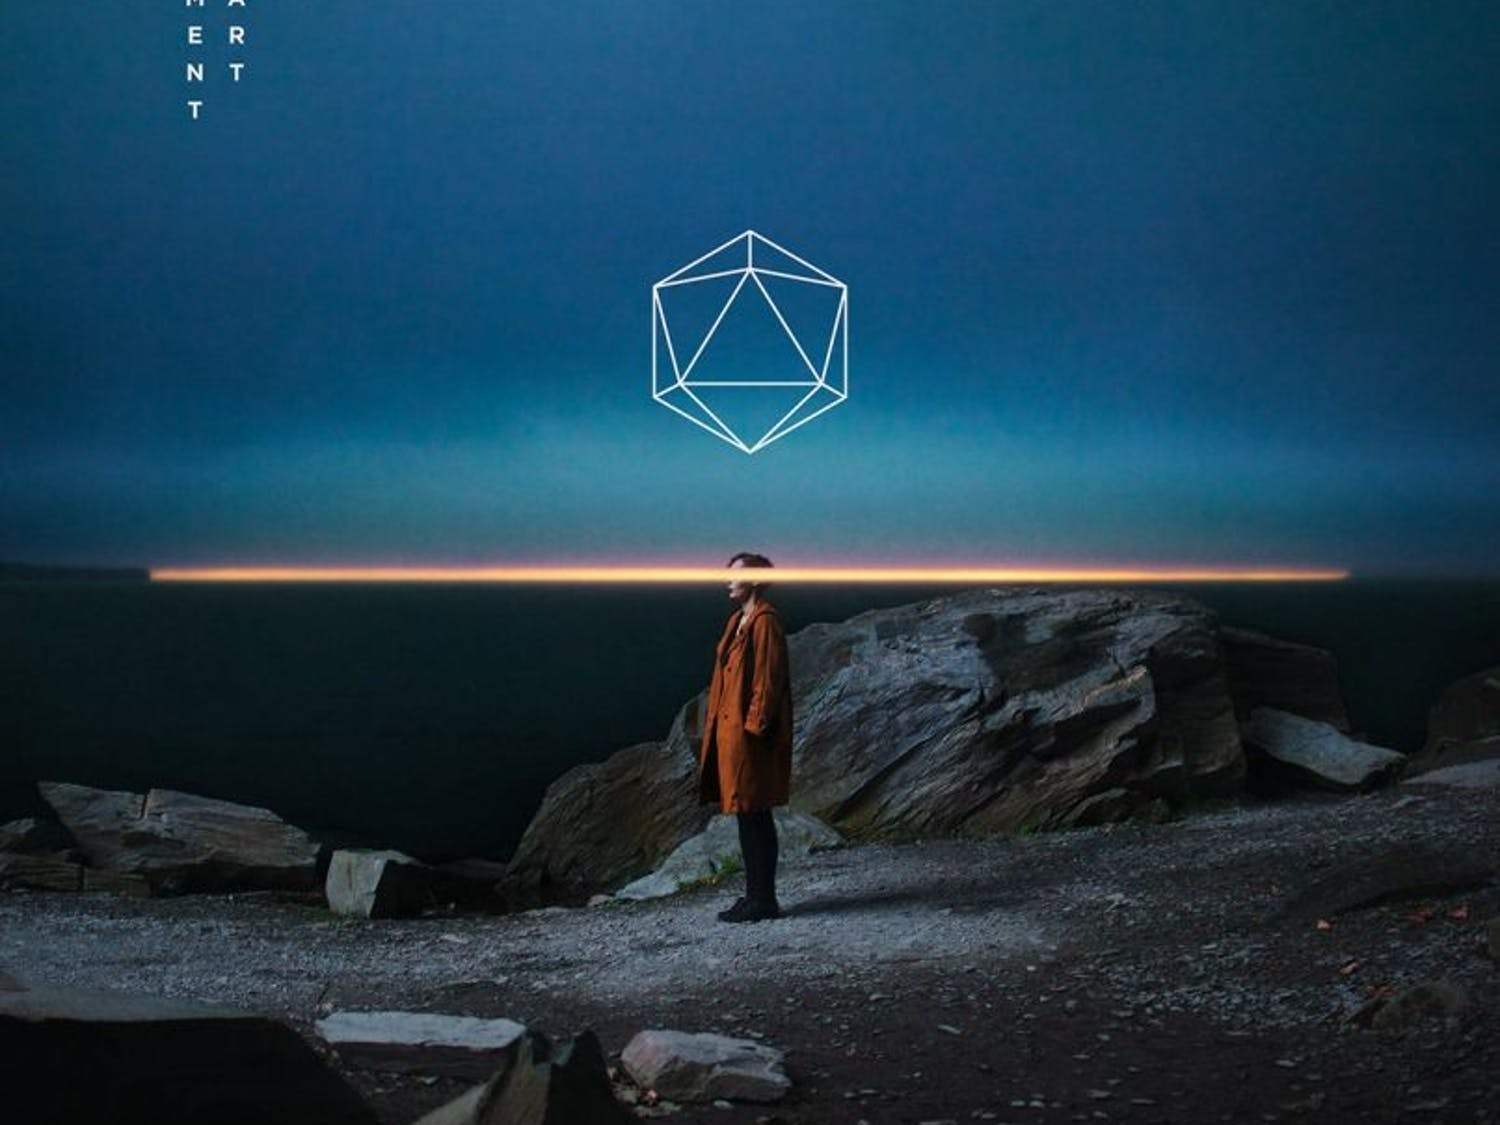 ODESZA's new album, A Moment Apart, was released this past Friday, Sept. 8.